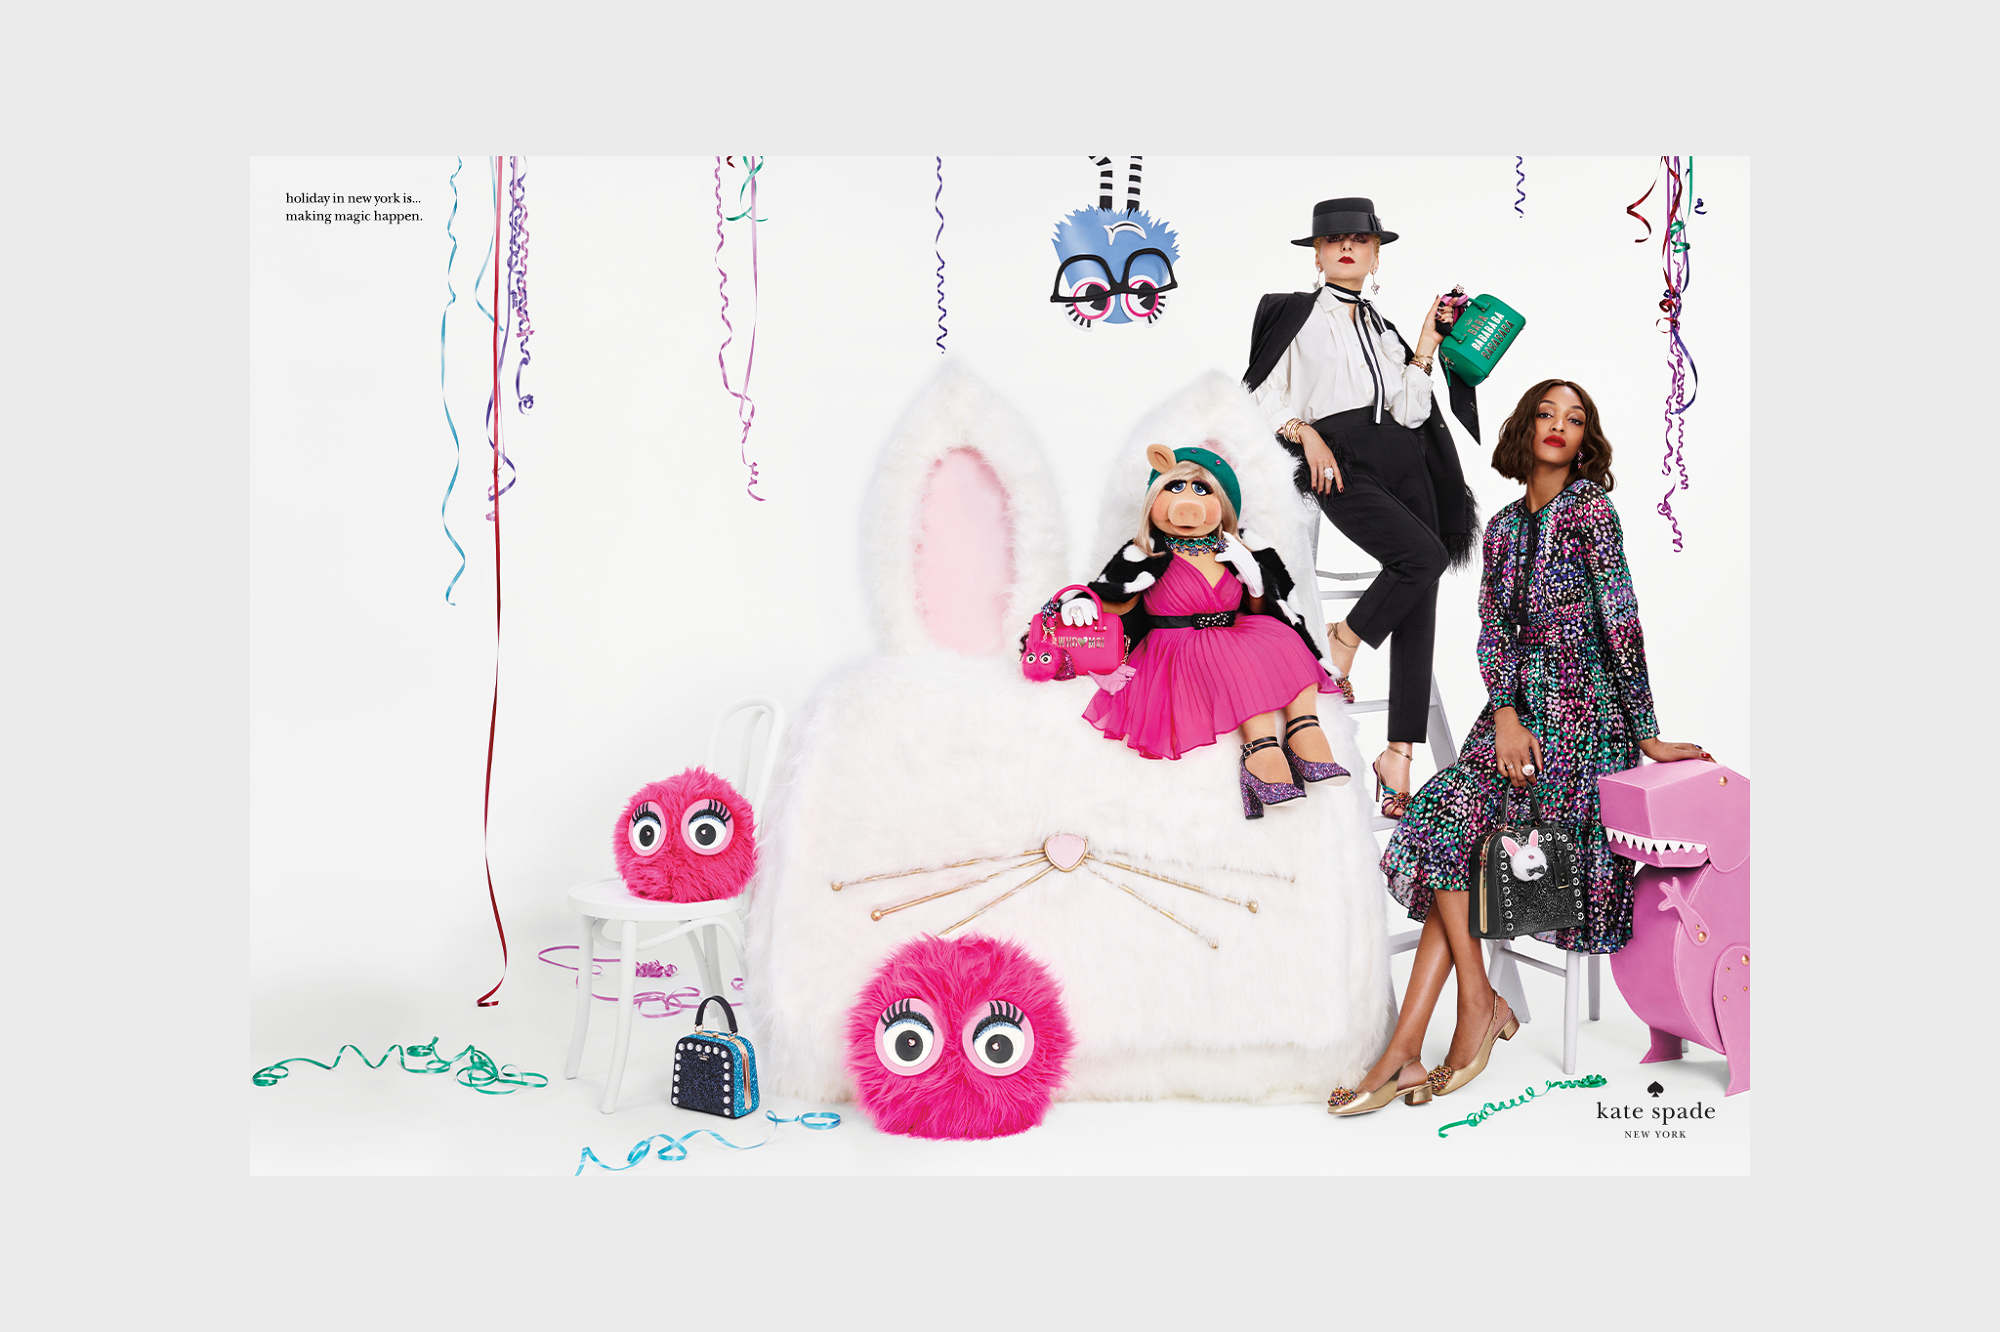 cc071ed94c8b3 Kate Spade NY Holiday 2016. Holiday in New York is… for making magic  happen. CAMPAIGN